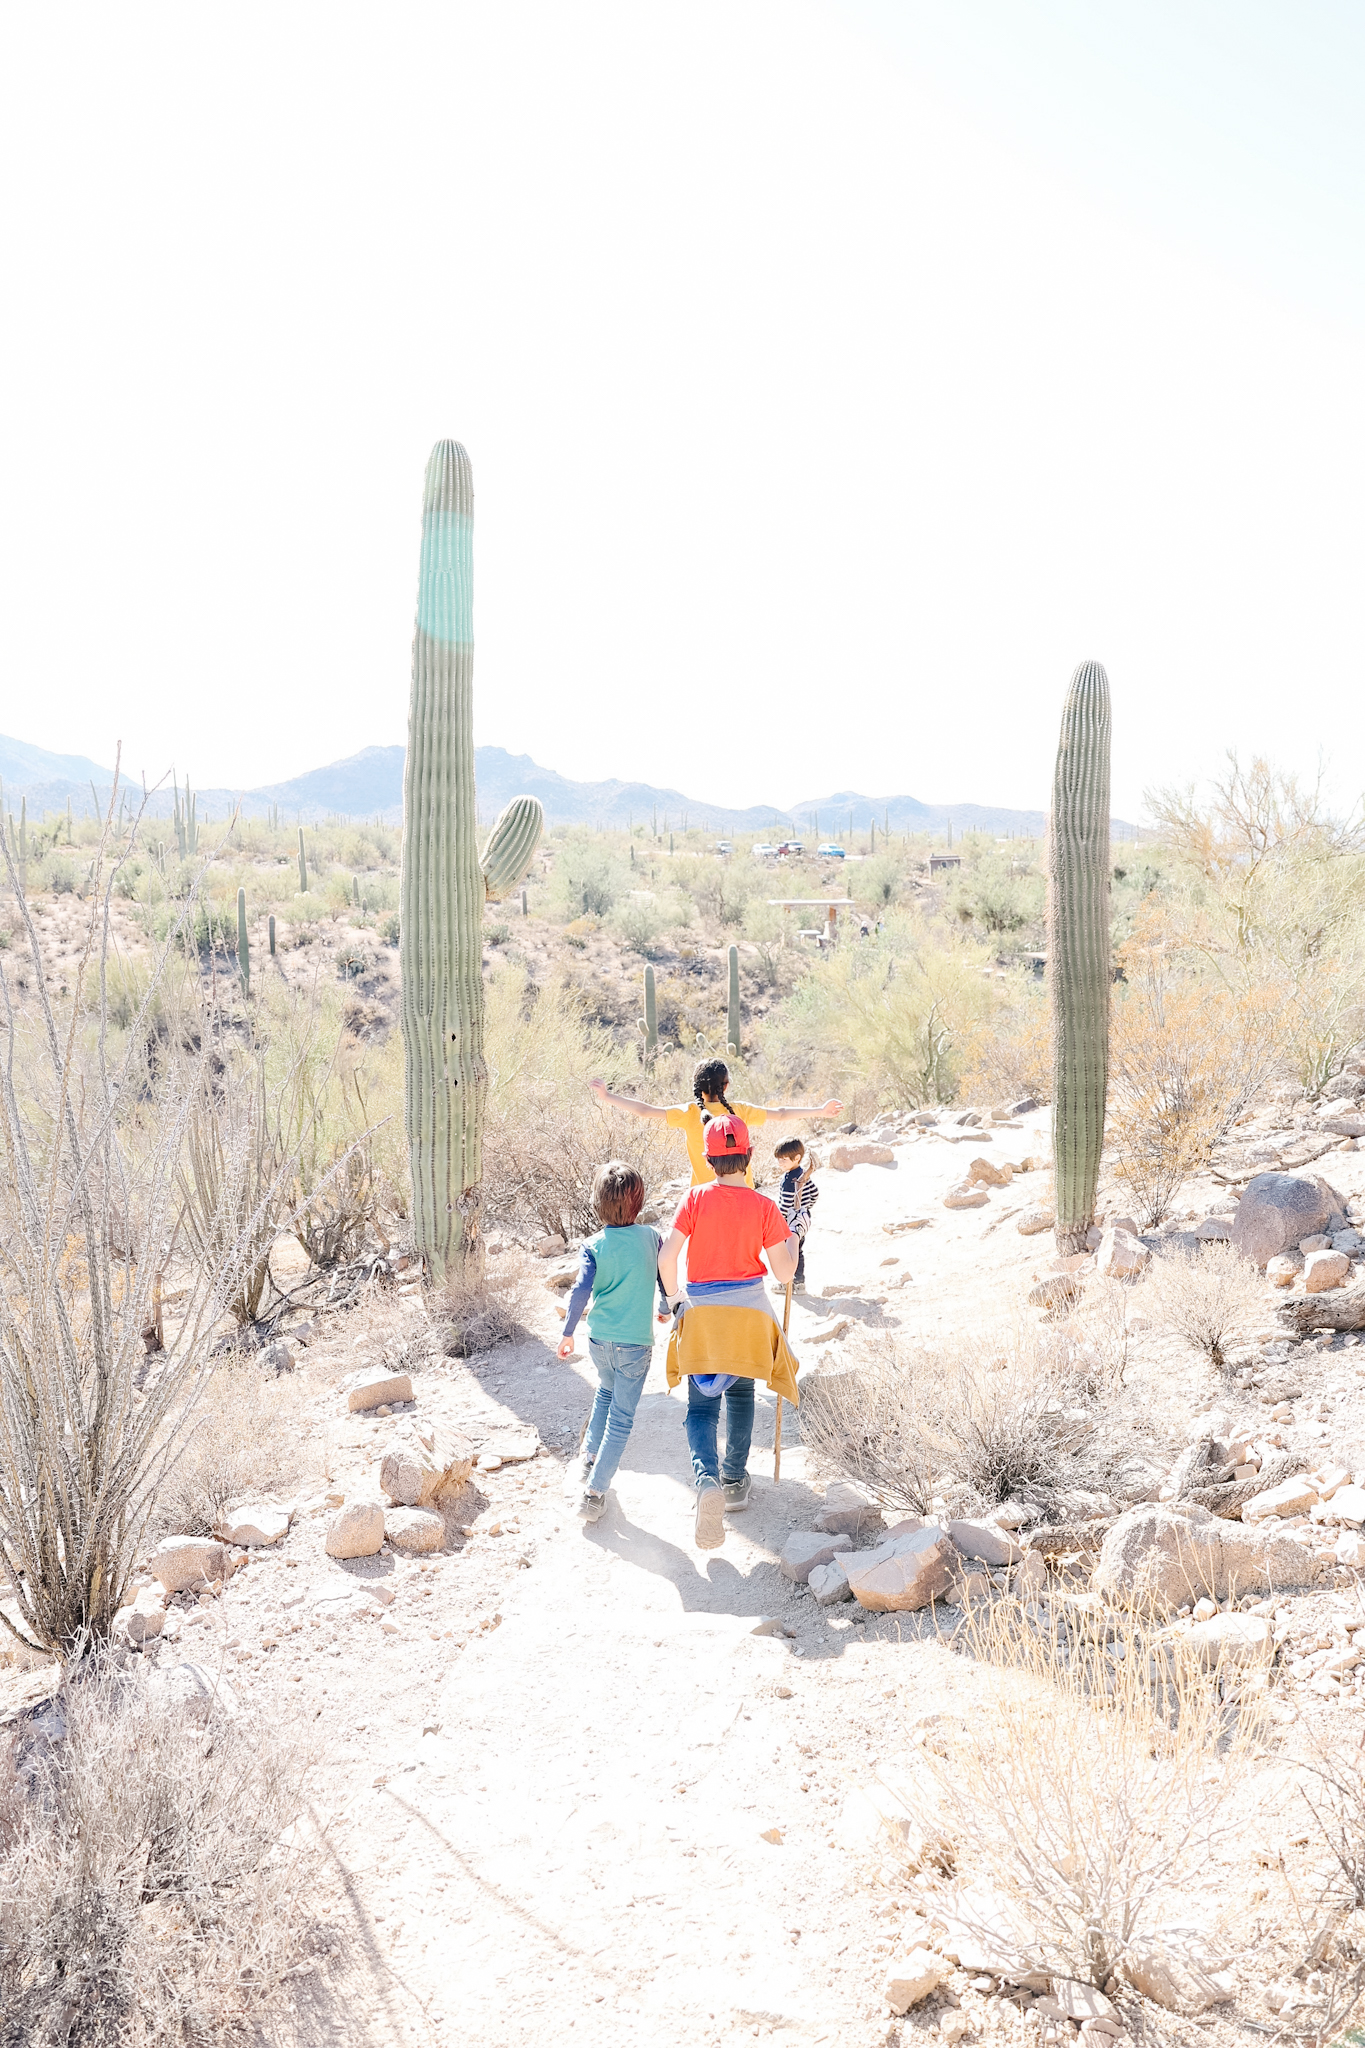 Hiking in saguaro national park with kids